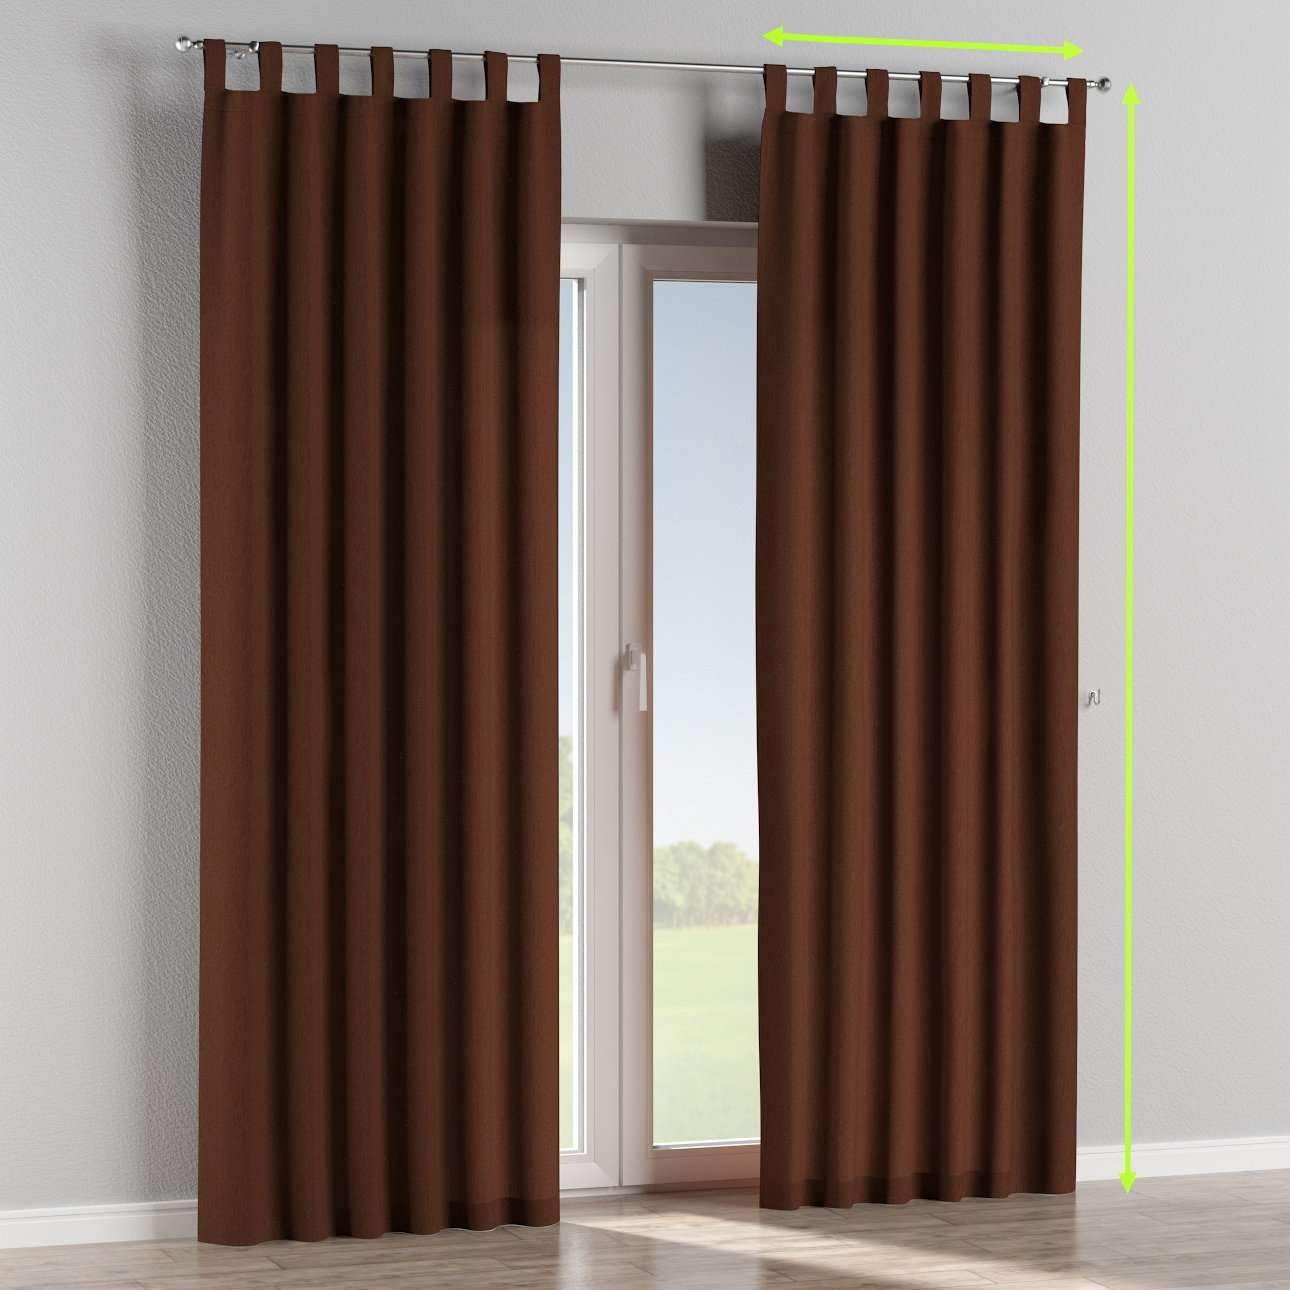 Tab top lined curtains in collection Chenille, fabric: 702-18